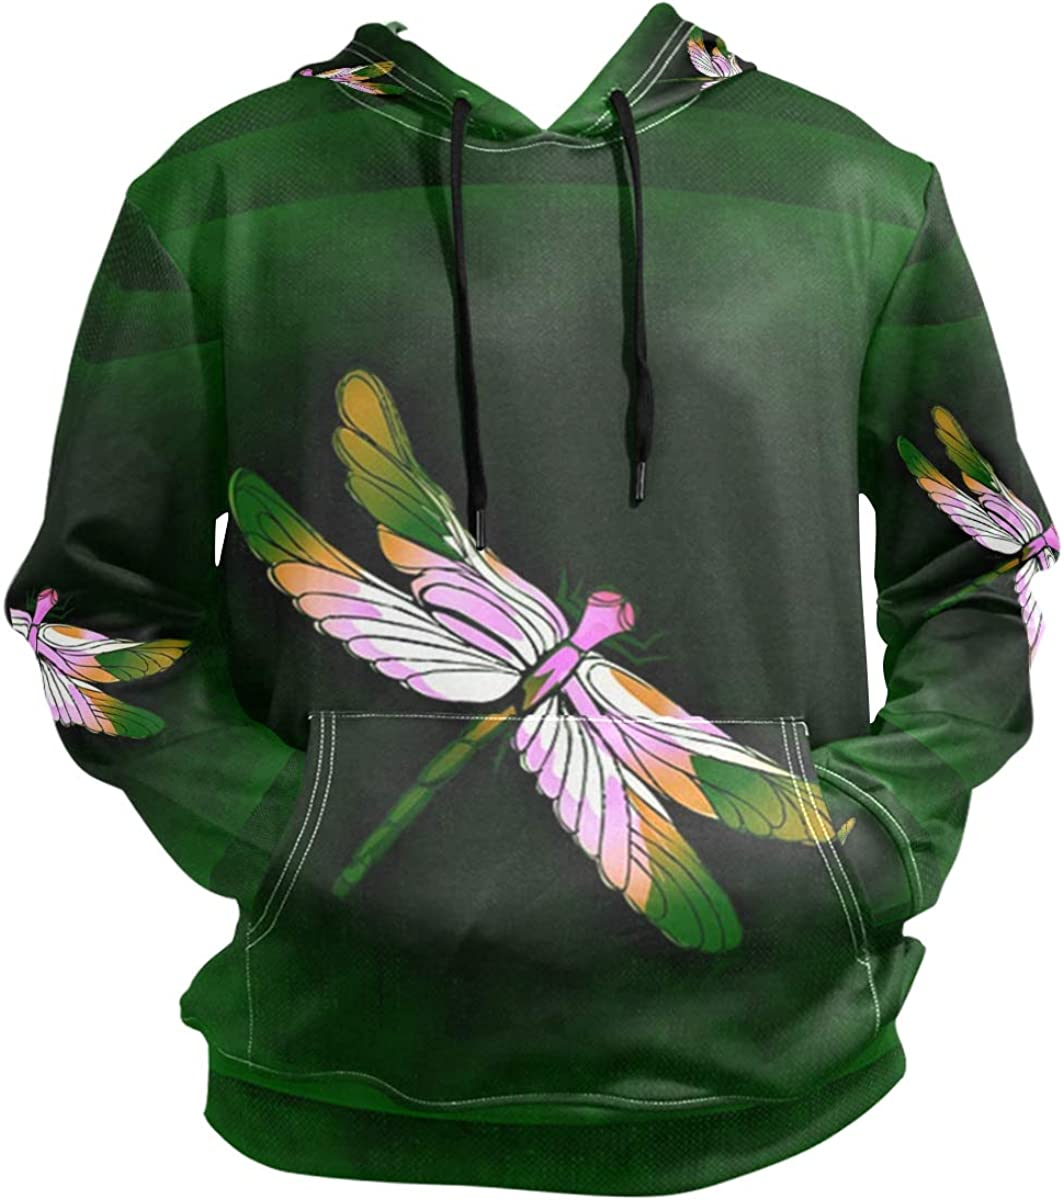 SLHFPX Dragonfly Hoodie 3D Pullover Hooded Long Sleeve Workout Sweatshirts